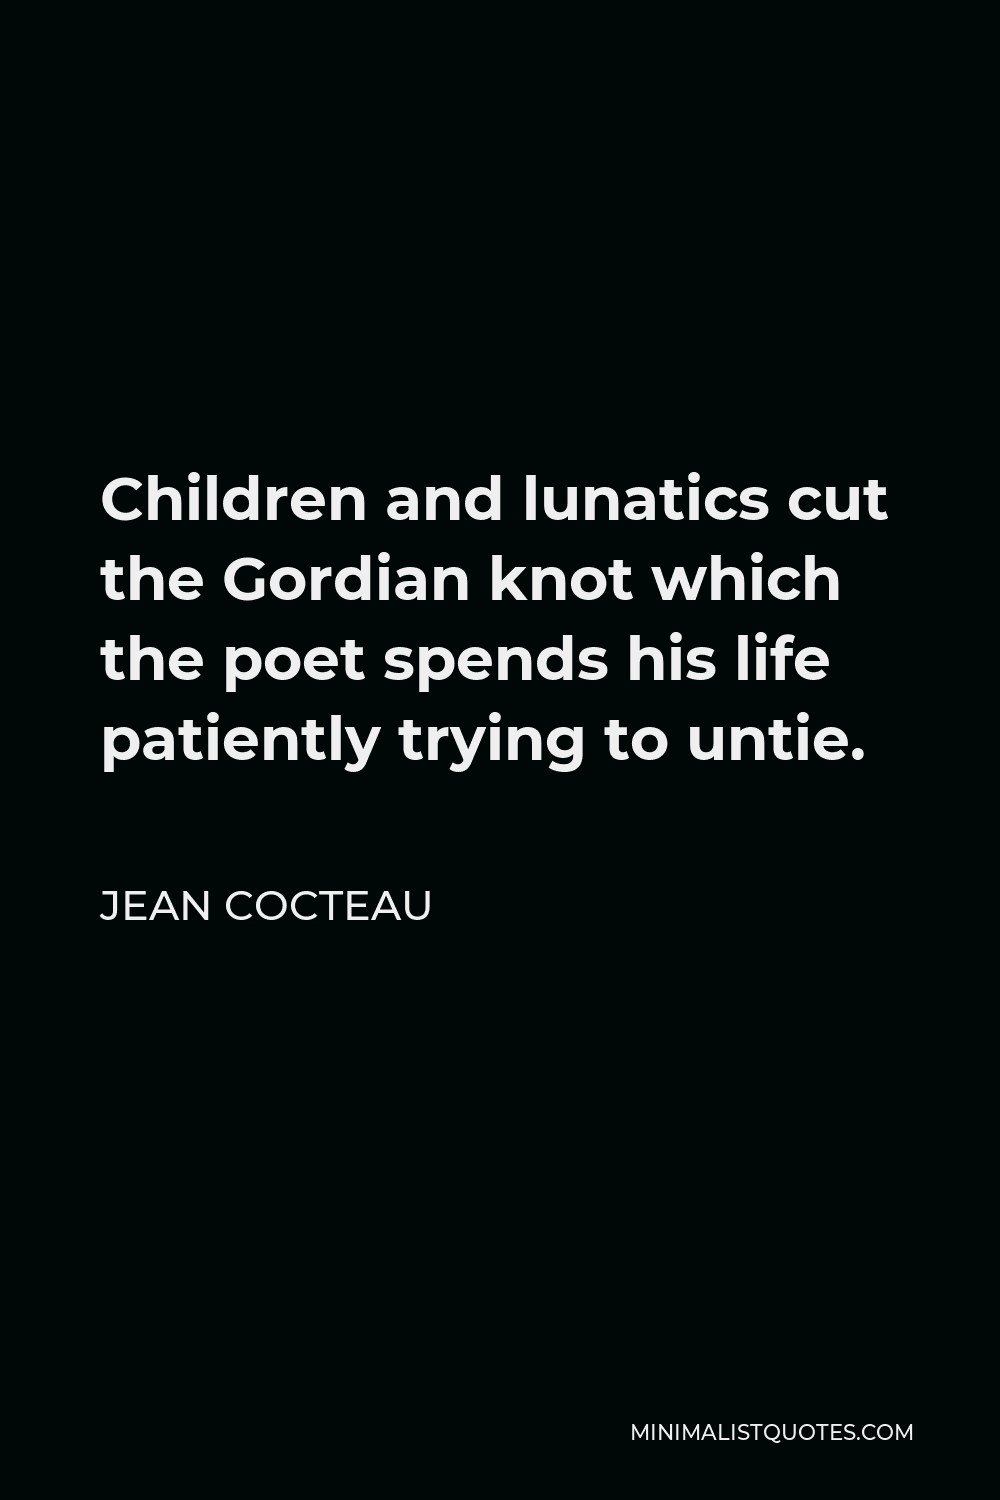 Jean Cocteau Quote - Children and lunatics cut the Gordian knot which the poet spends his life patiently trying to untie.